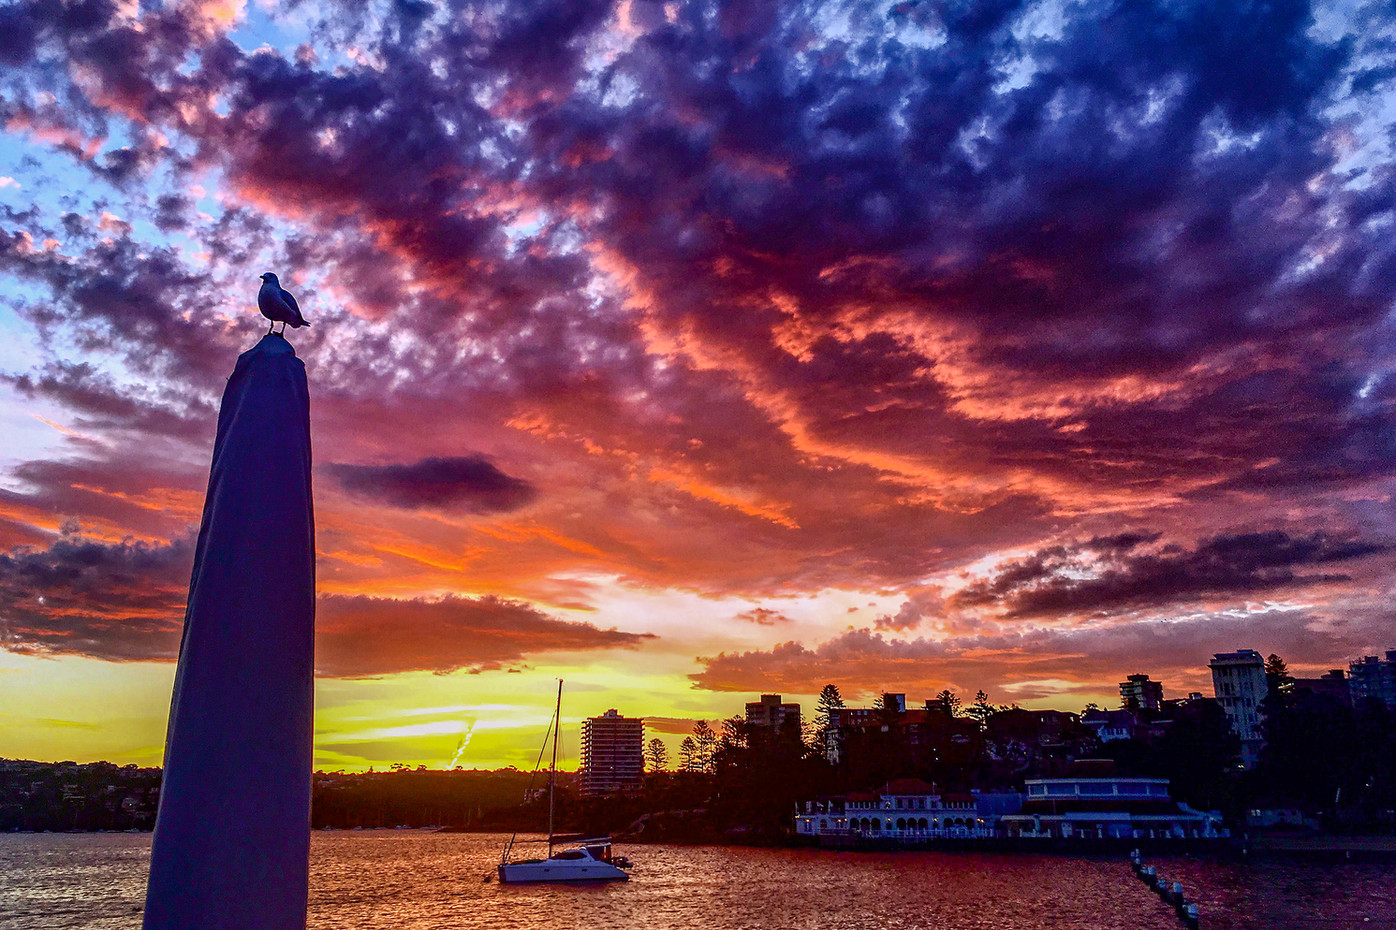 Sunset from Manly Wharf in Sydney, Australia